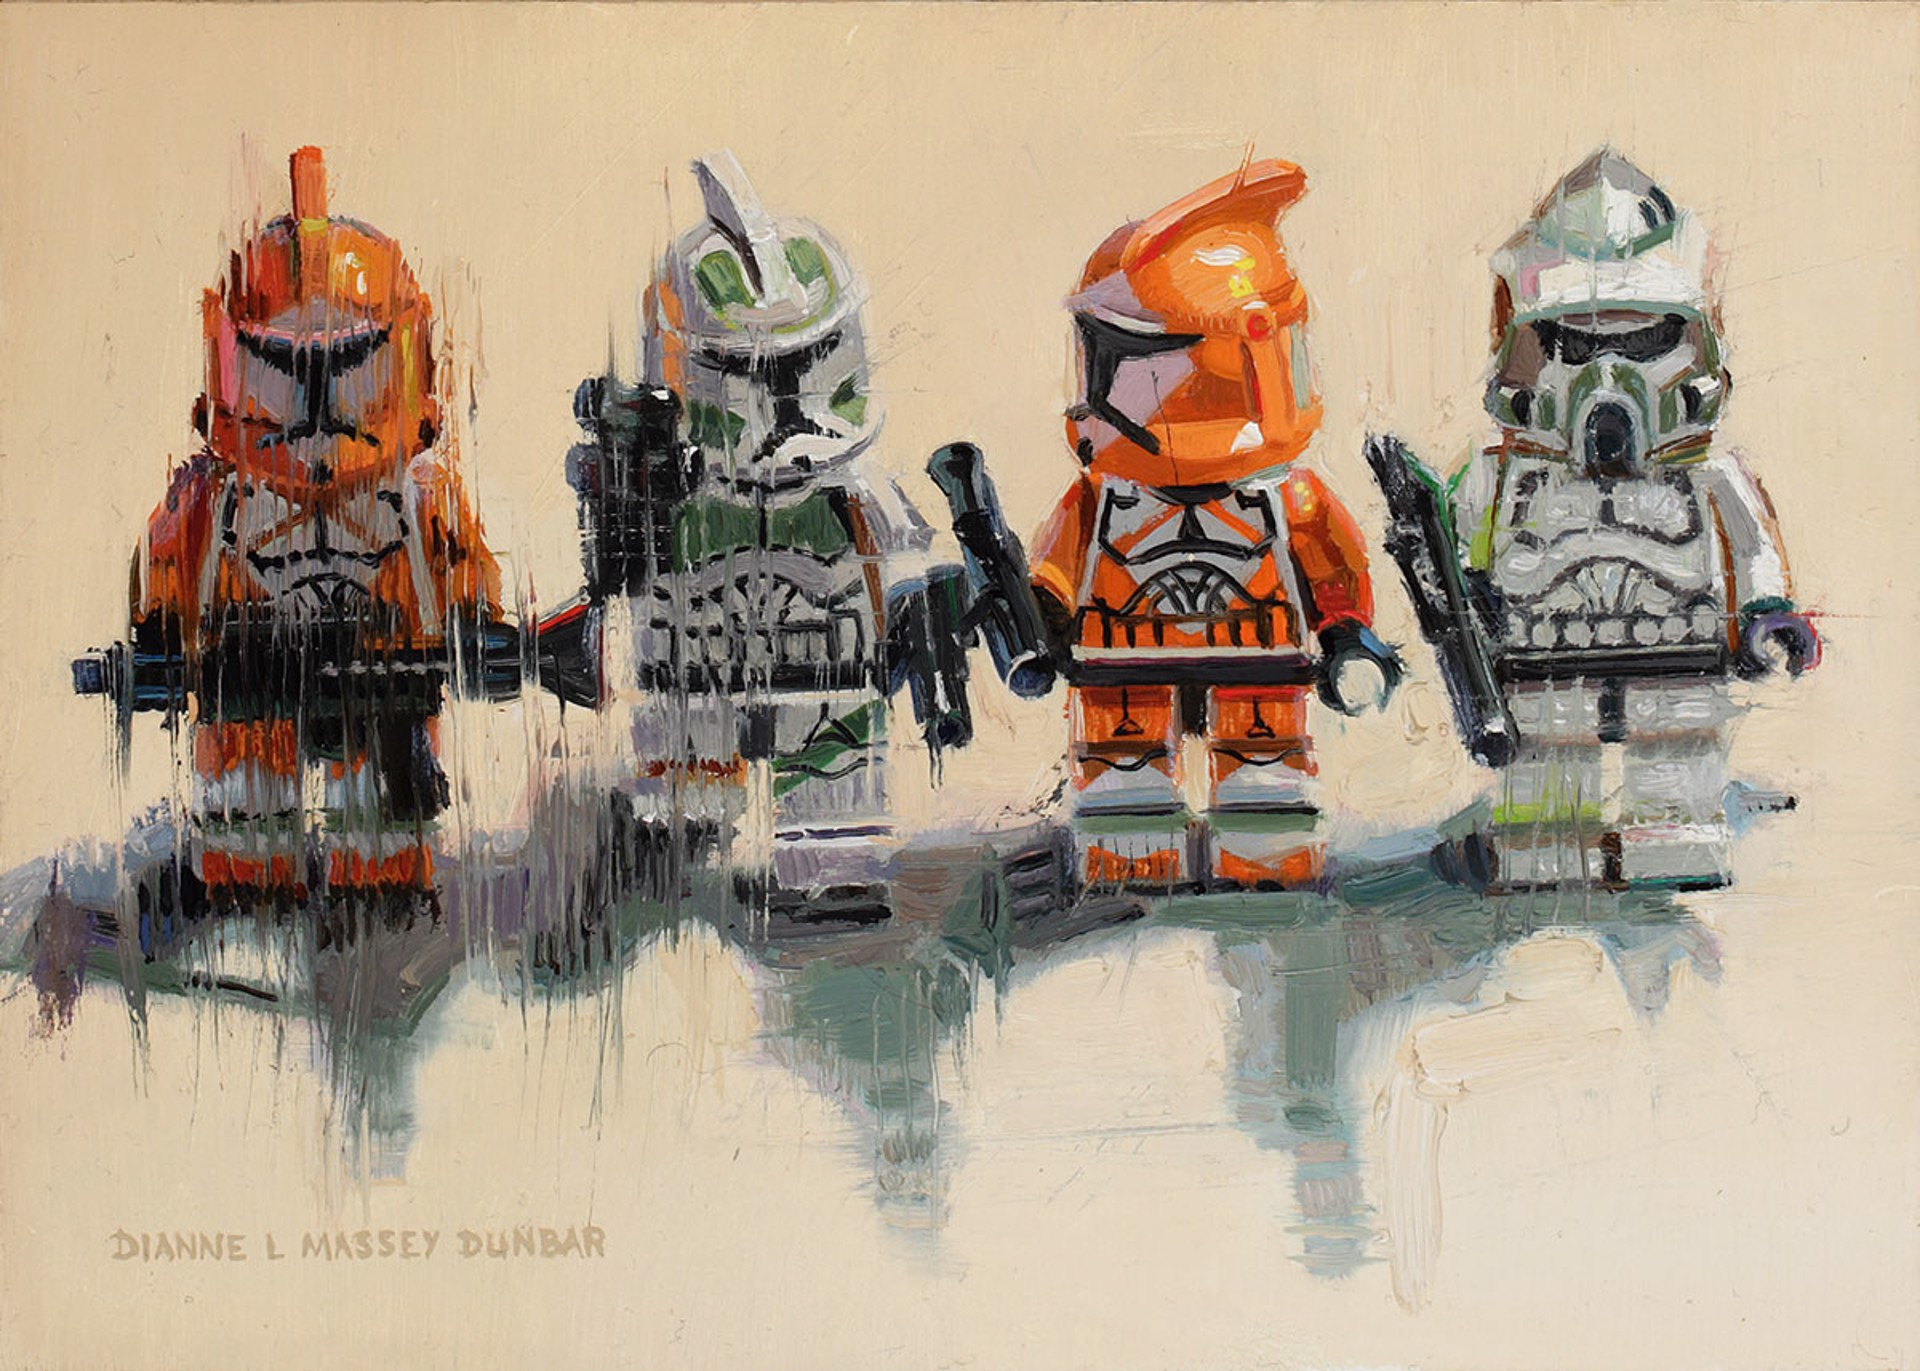 Troopers by Dianne L Massey Dunbar